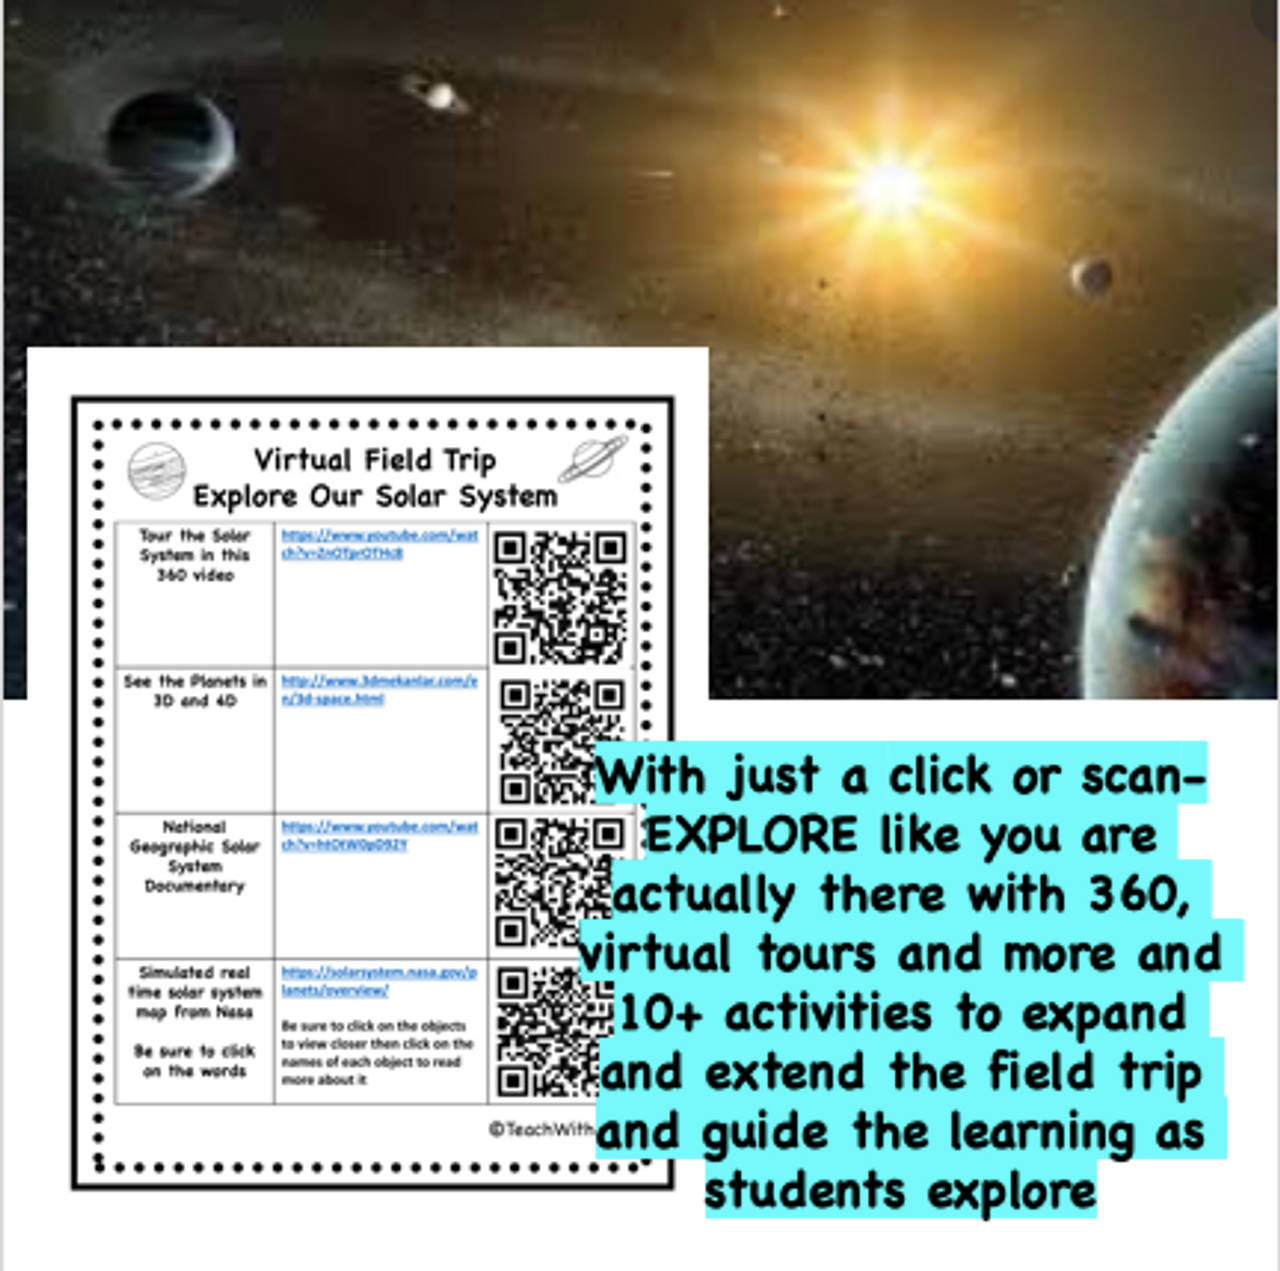 Virtual Field Trip to Solar System - Activities for Middle and High Schoolers